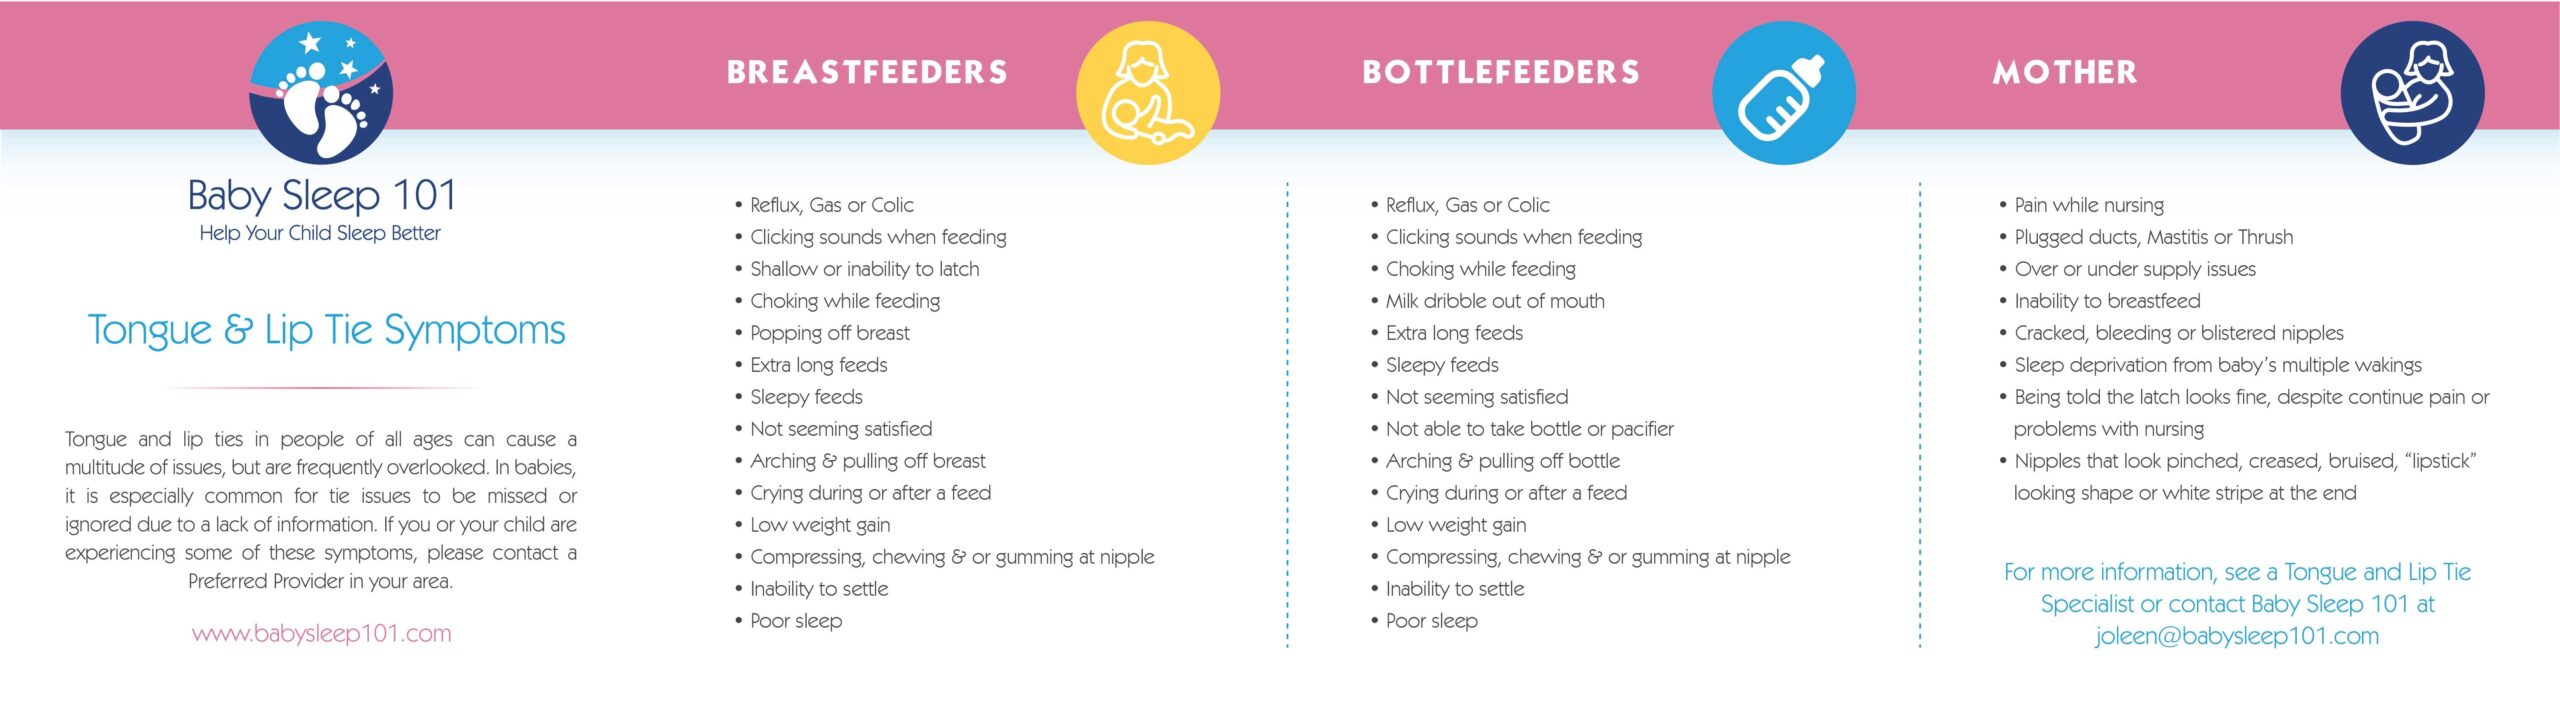 Tongue tie symptoms for breast and bottle feeders